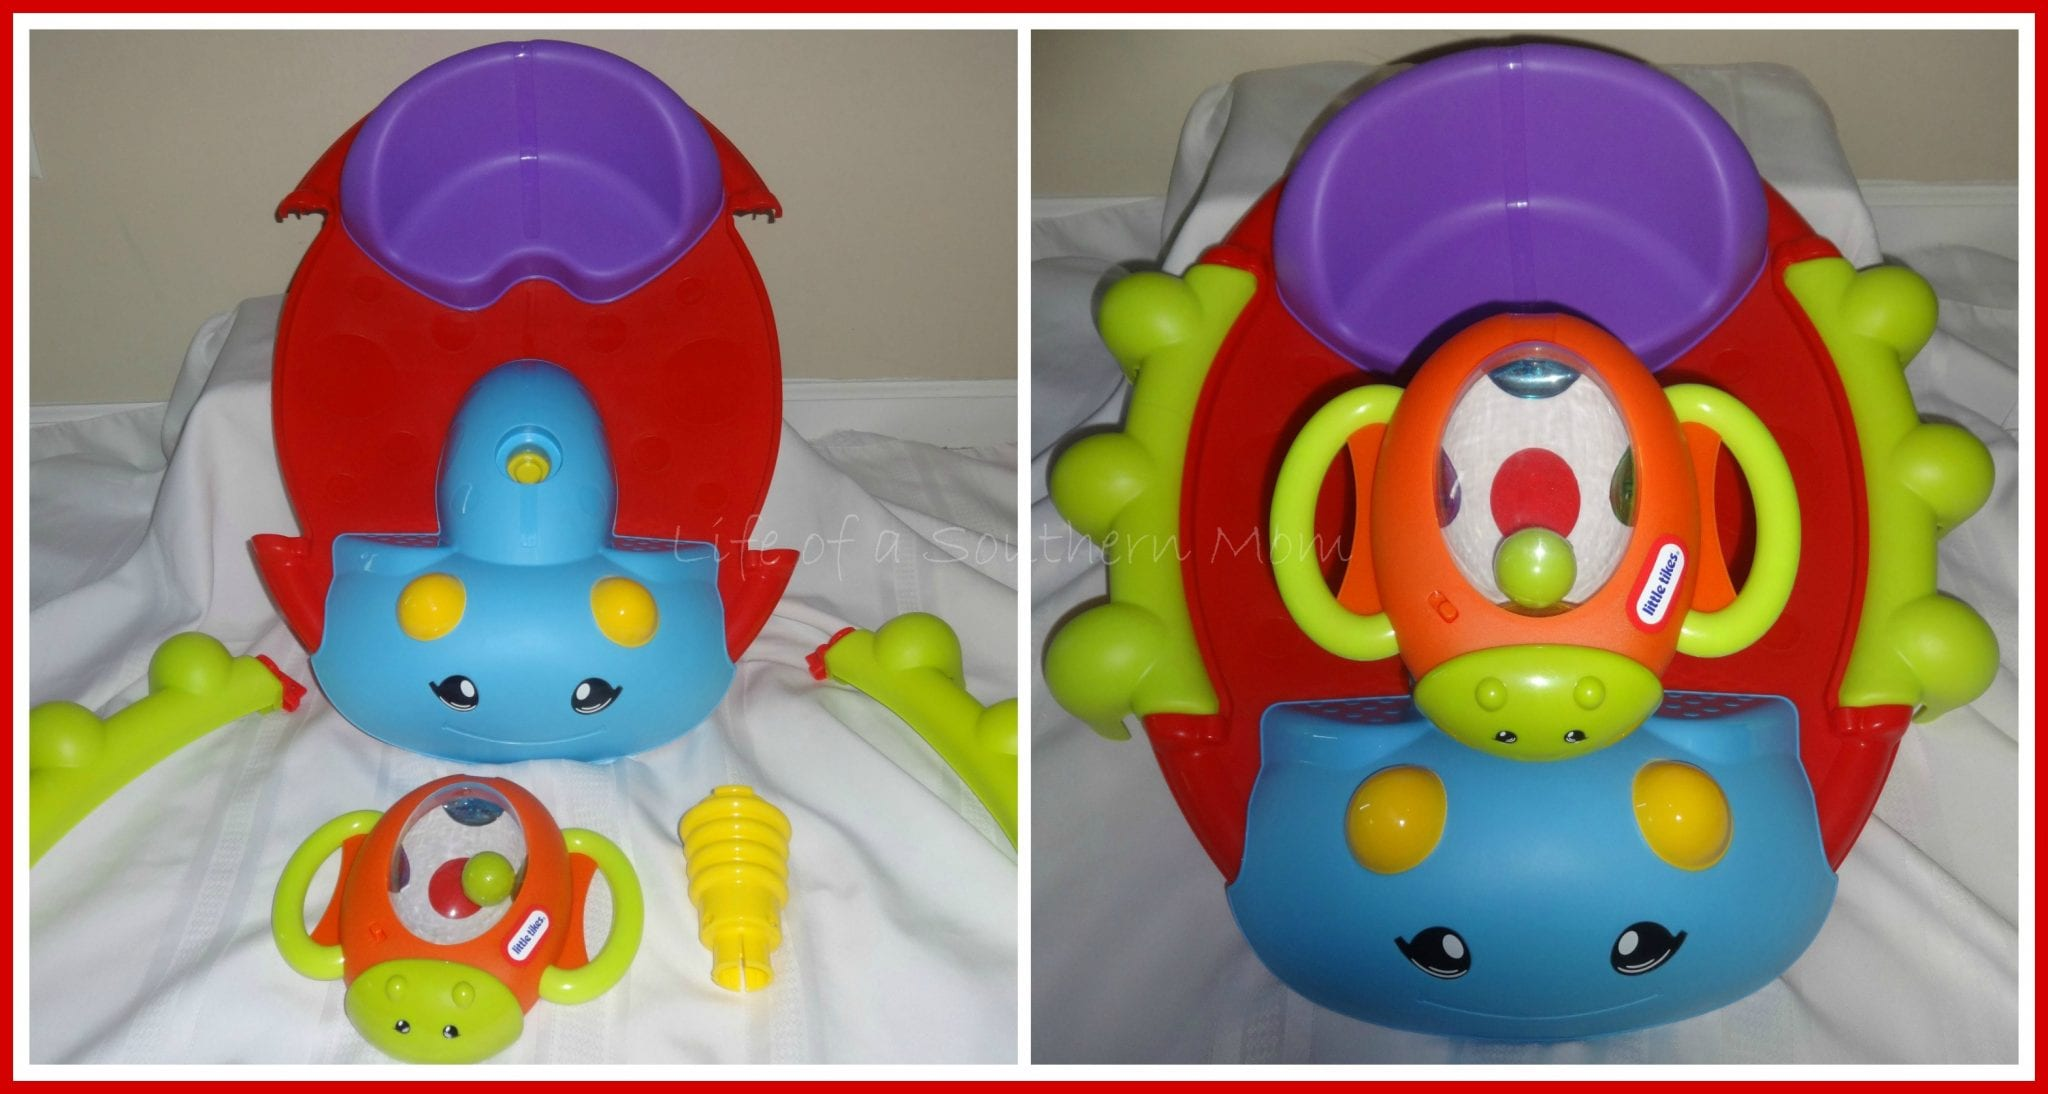 Little Tikes Activity Garden Rock N Spin Review